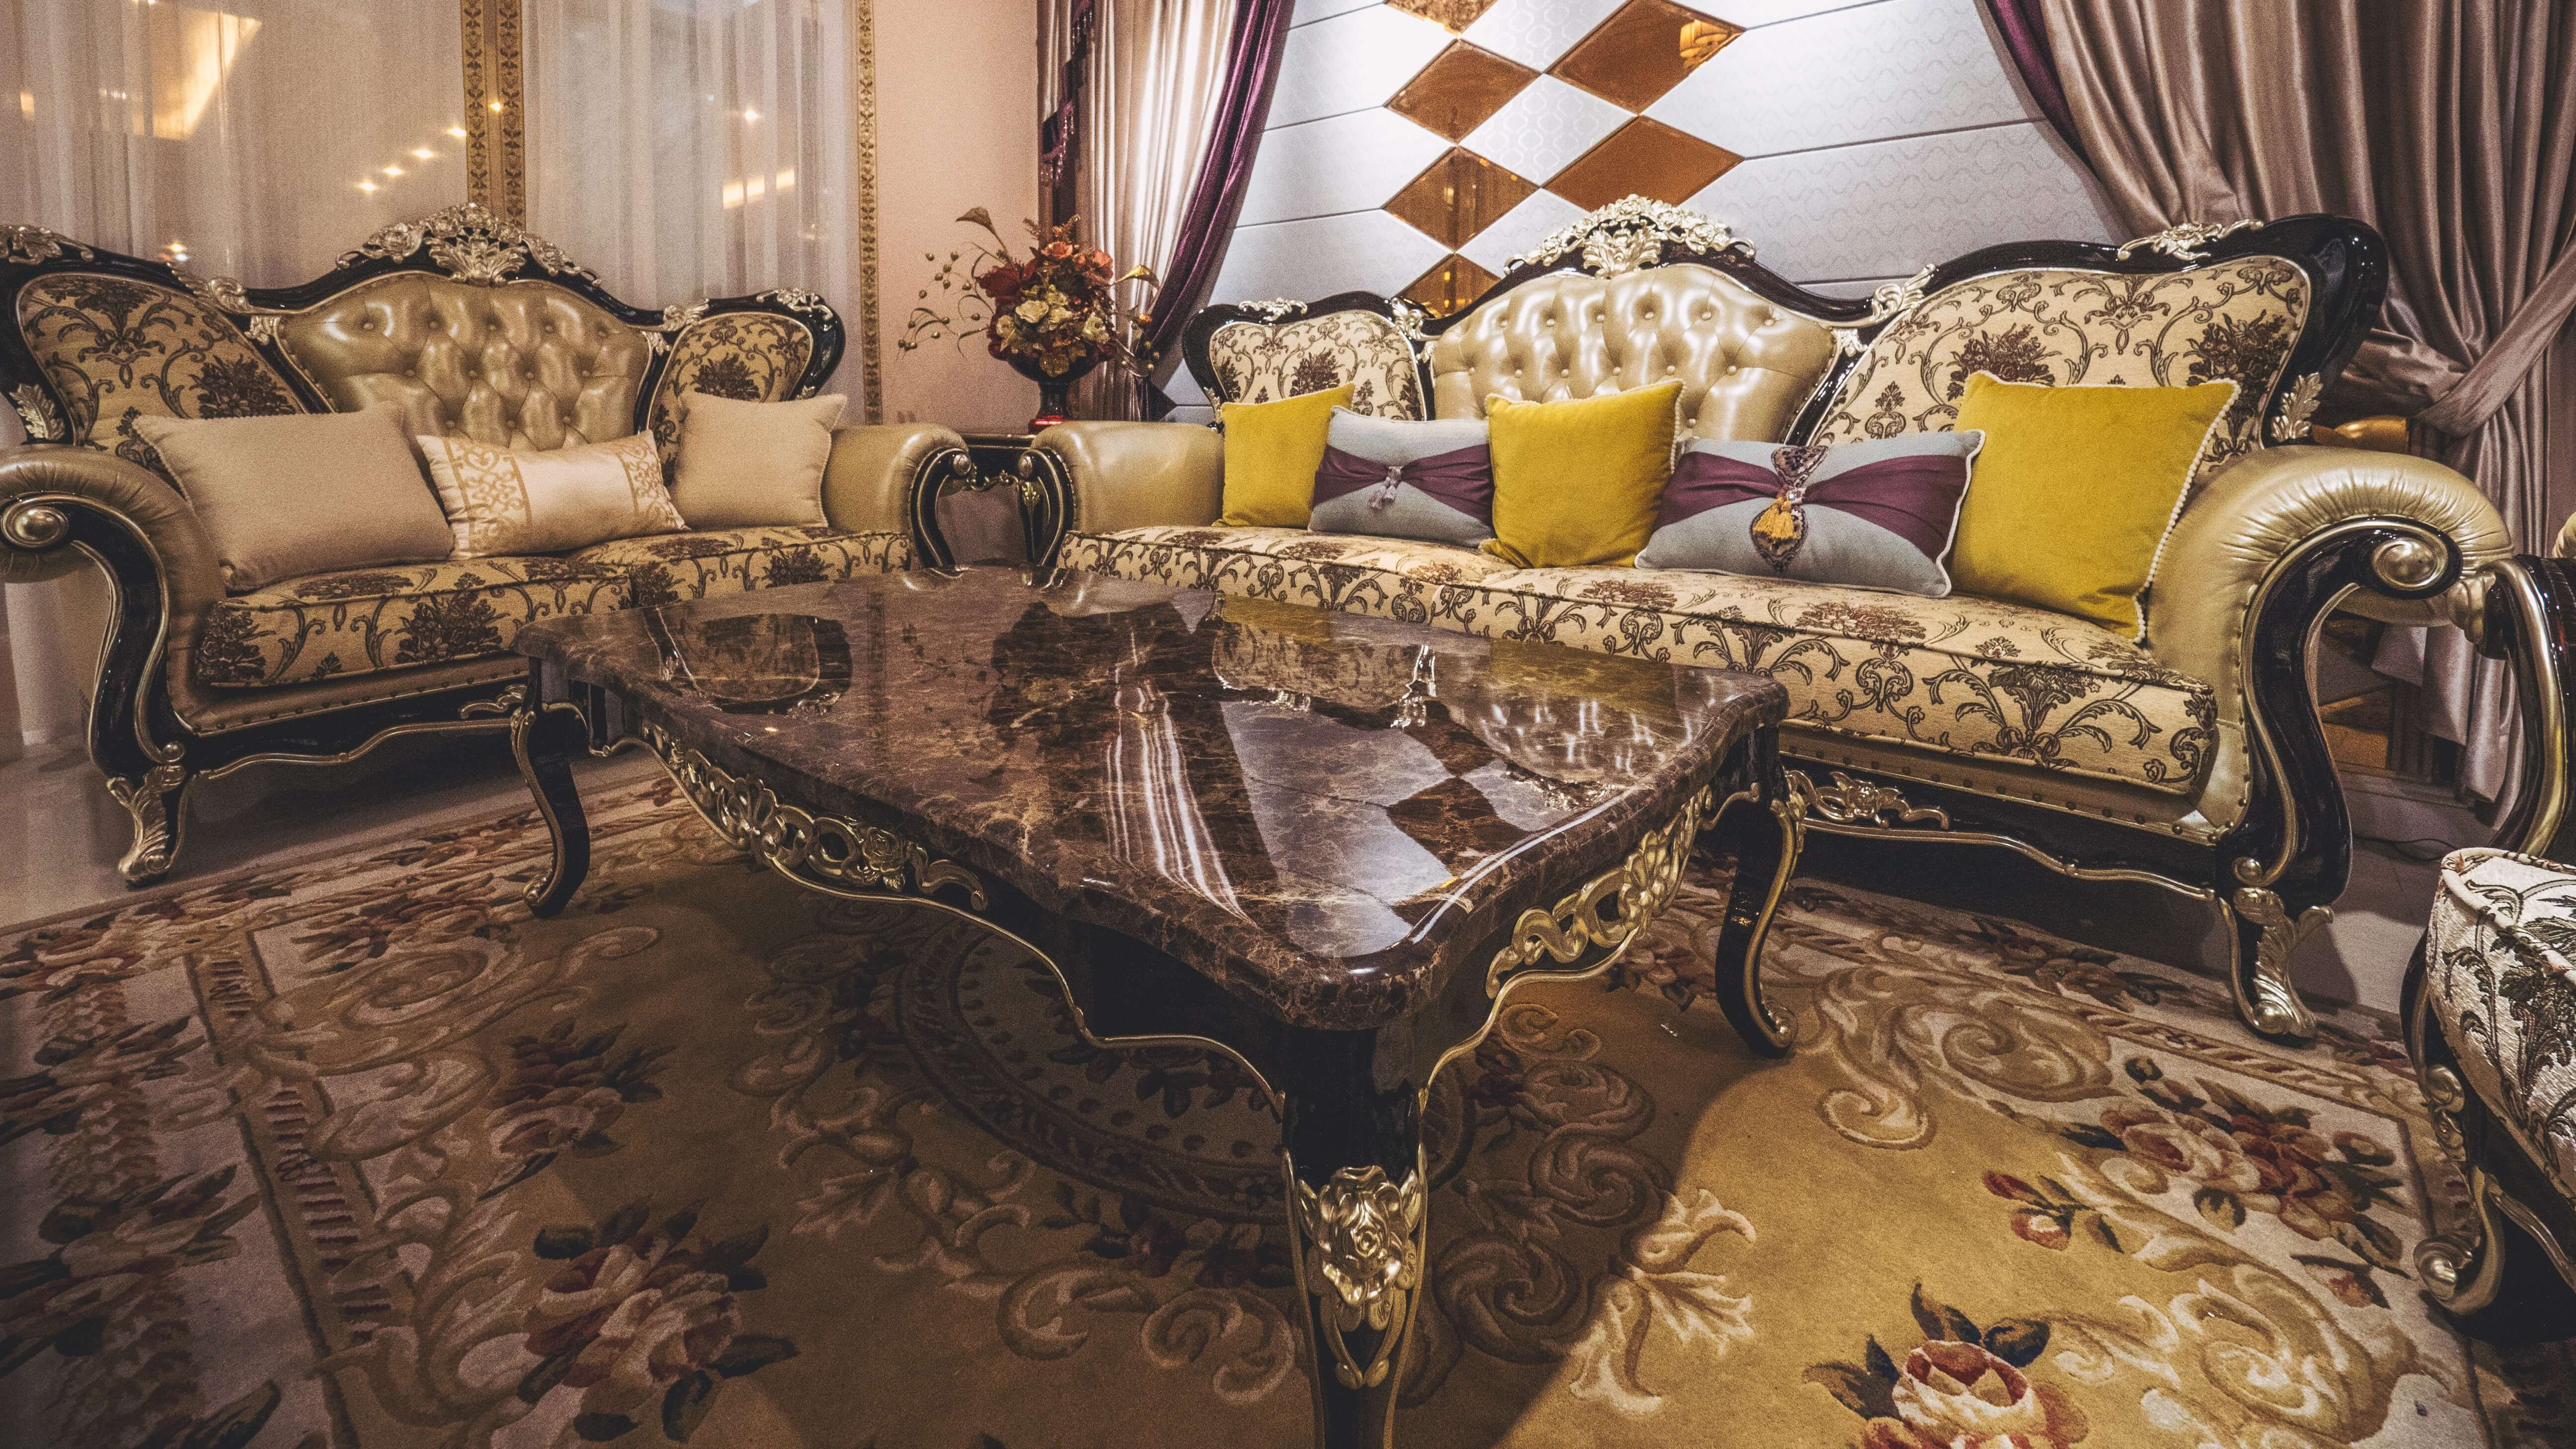 What Are The Characteristics Of Baroque Furniture